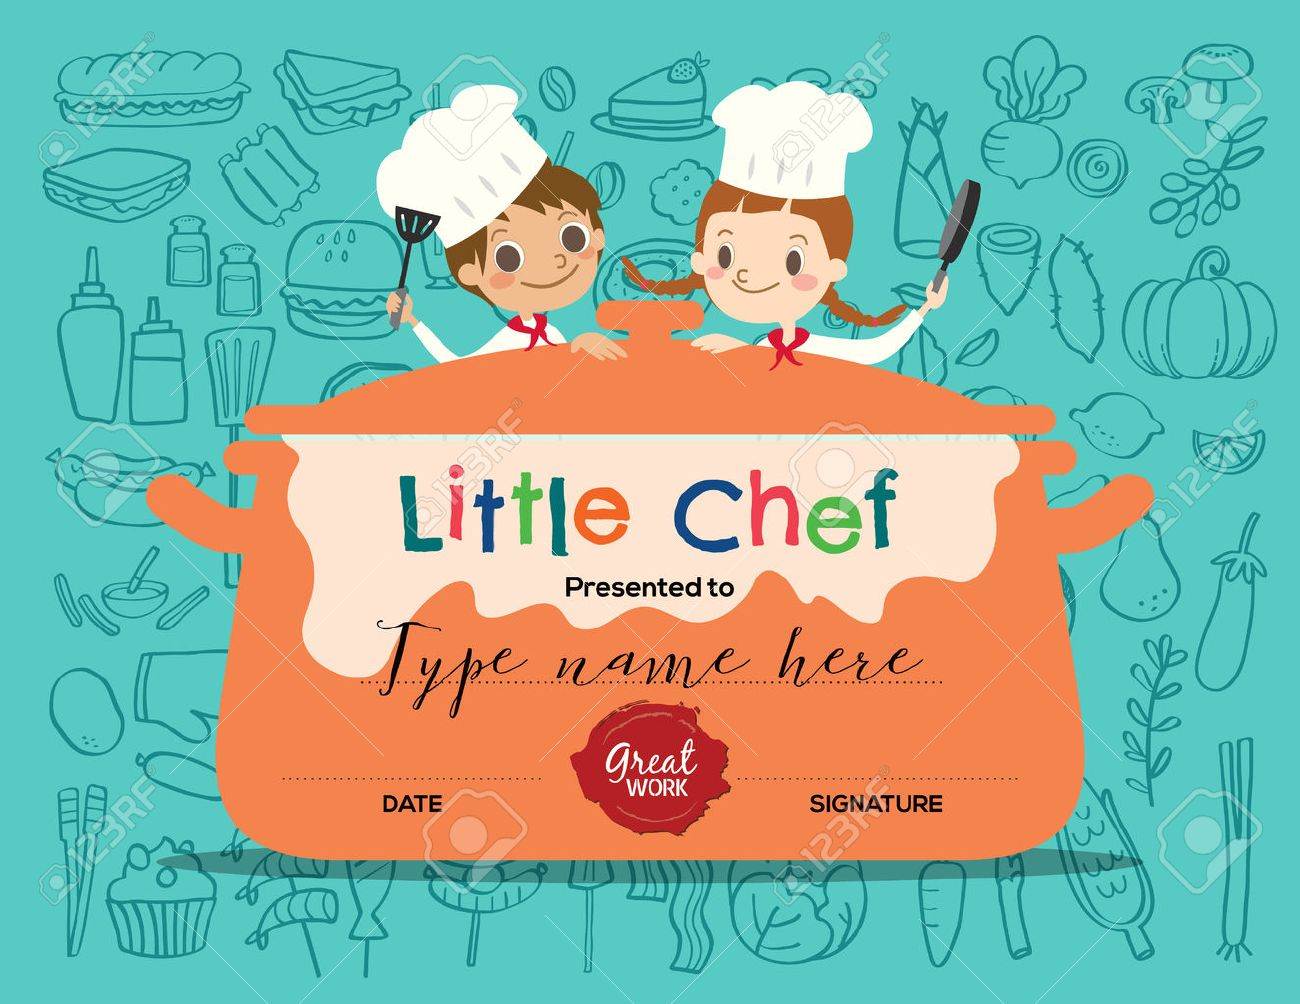 Kids Cooking class certificate design template with little chef cartoon illustration - 55656559